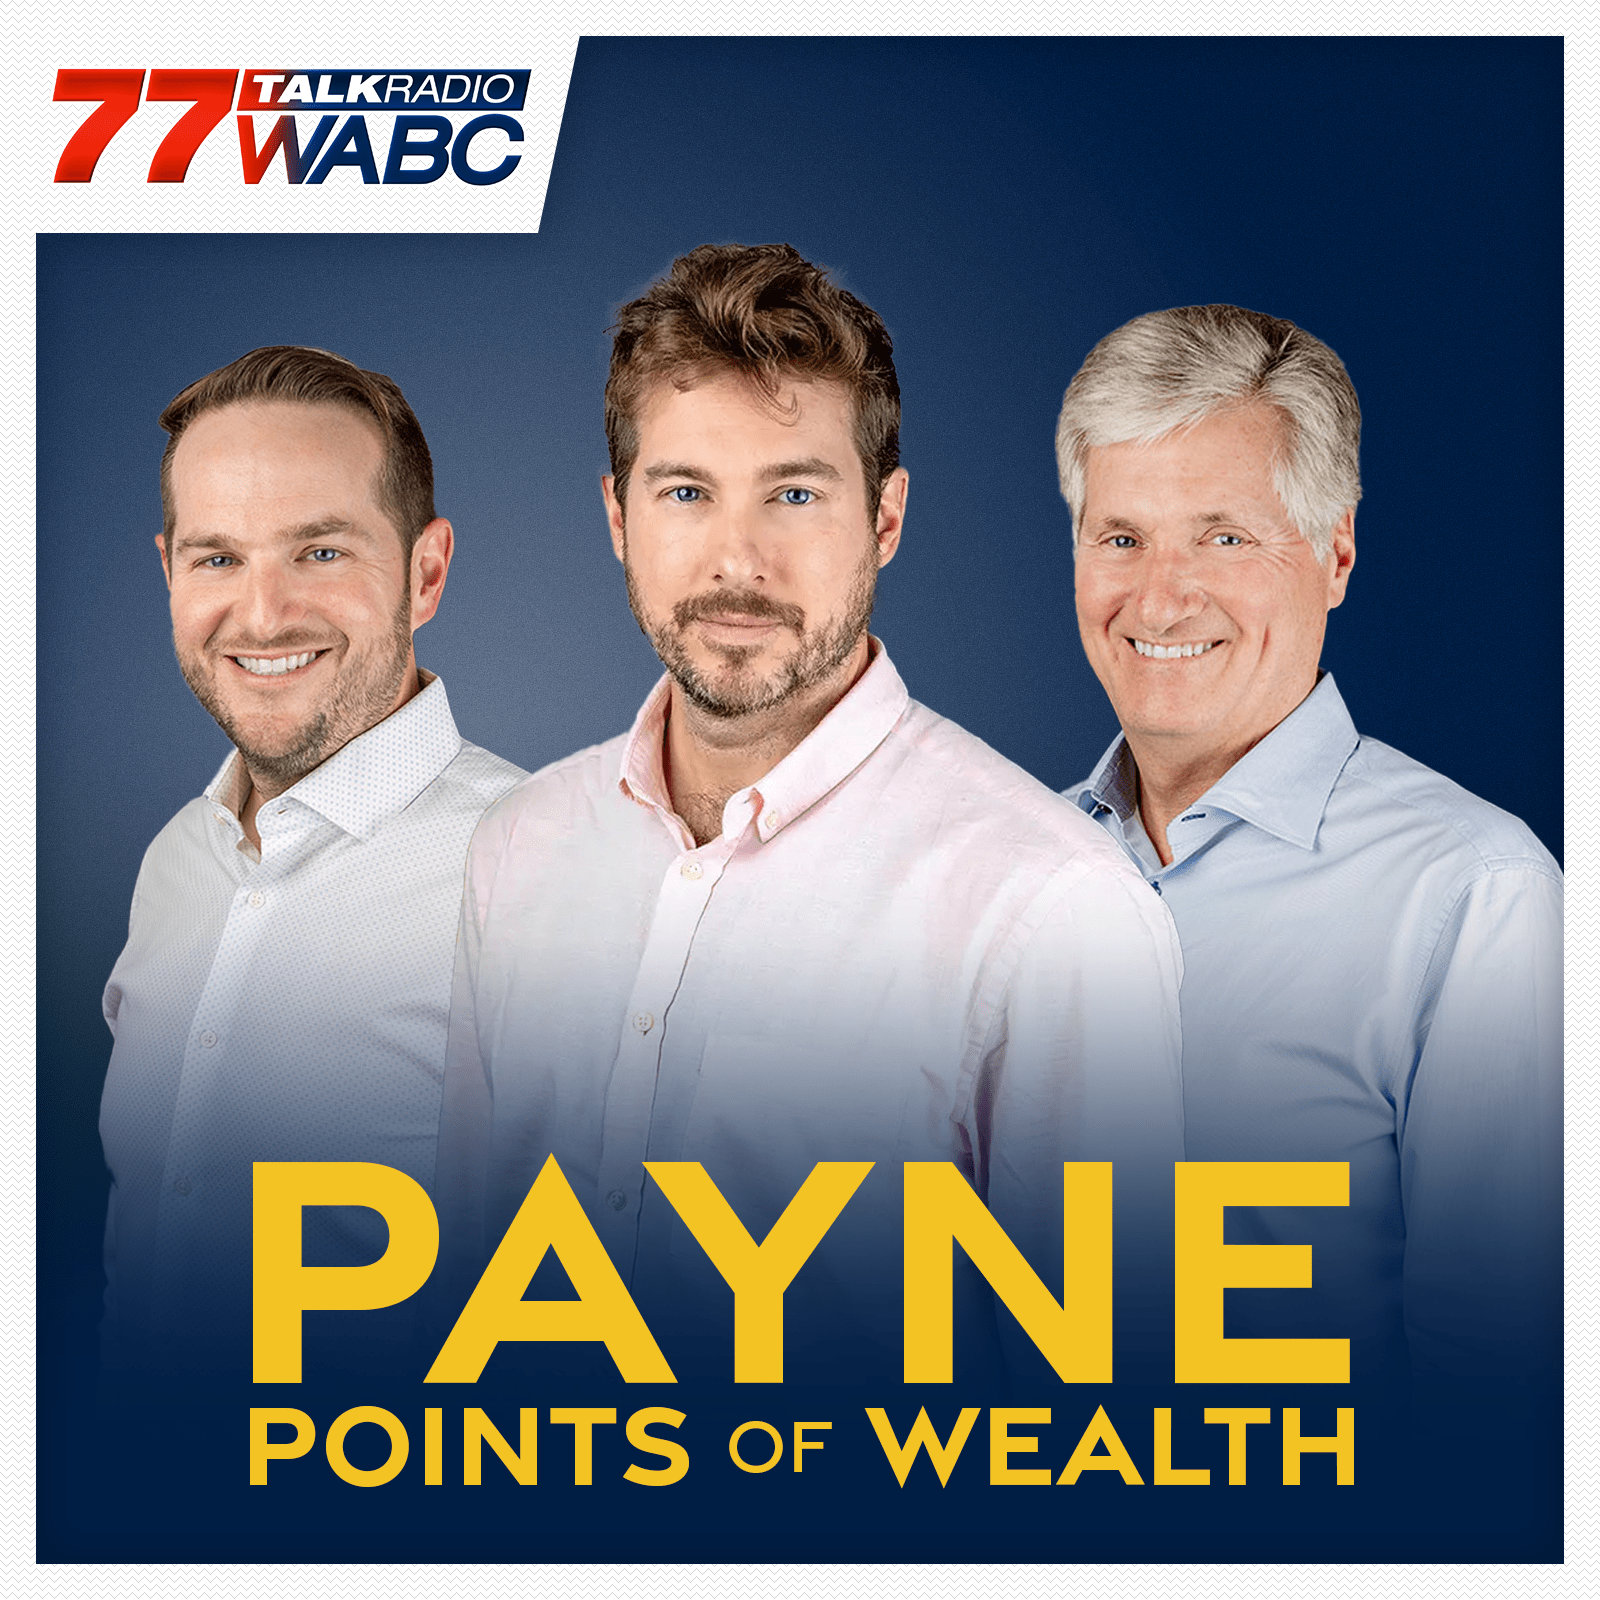 Payne Points of Wealth